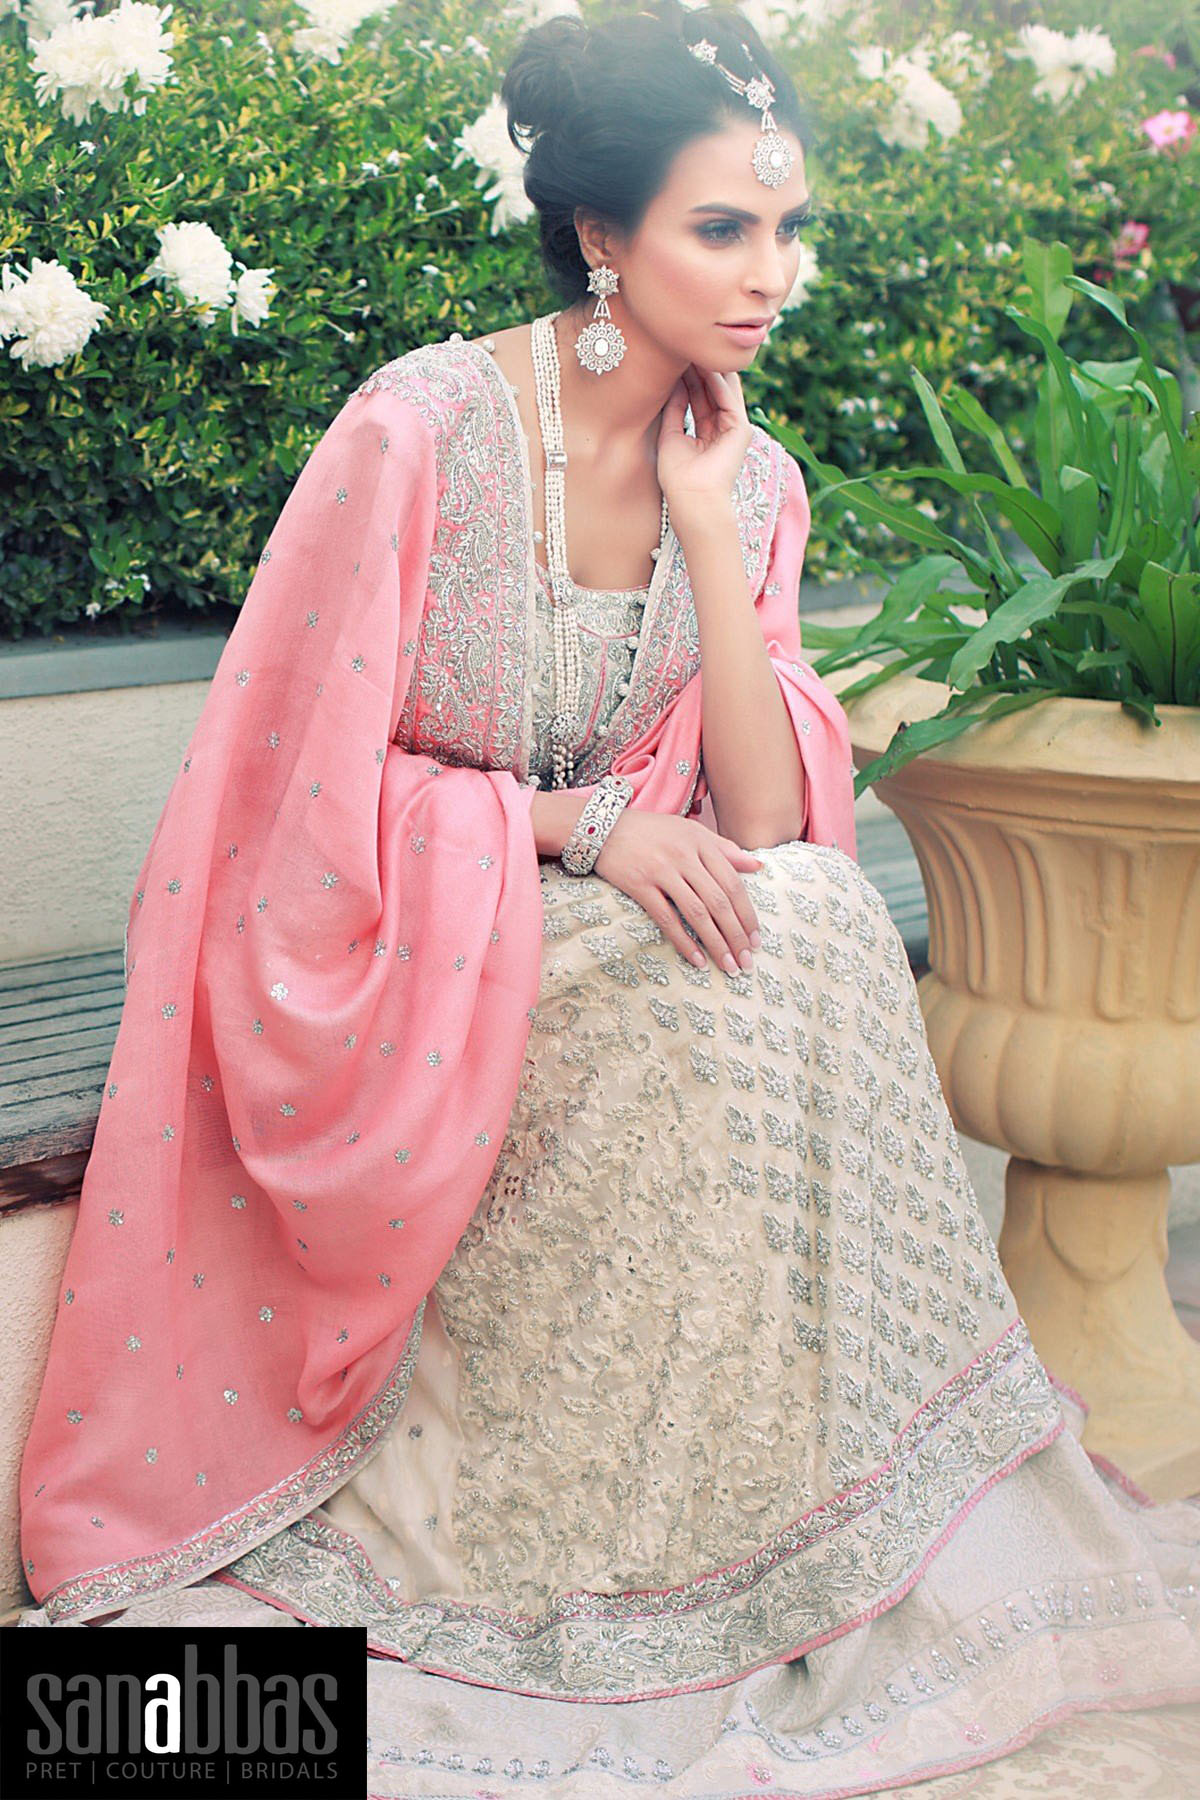 8d9a0db3aad The next in the list of the best boutiques for bridal shopping in Karachi  is the renowned Sana Abbas. The bridal collection of this brand is known  for its ...